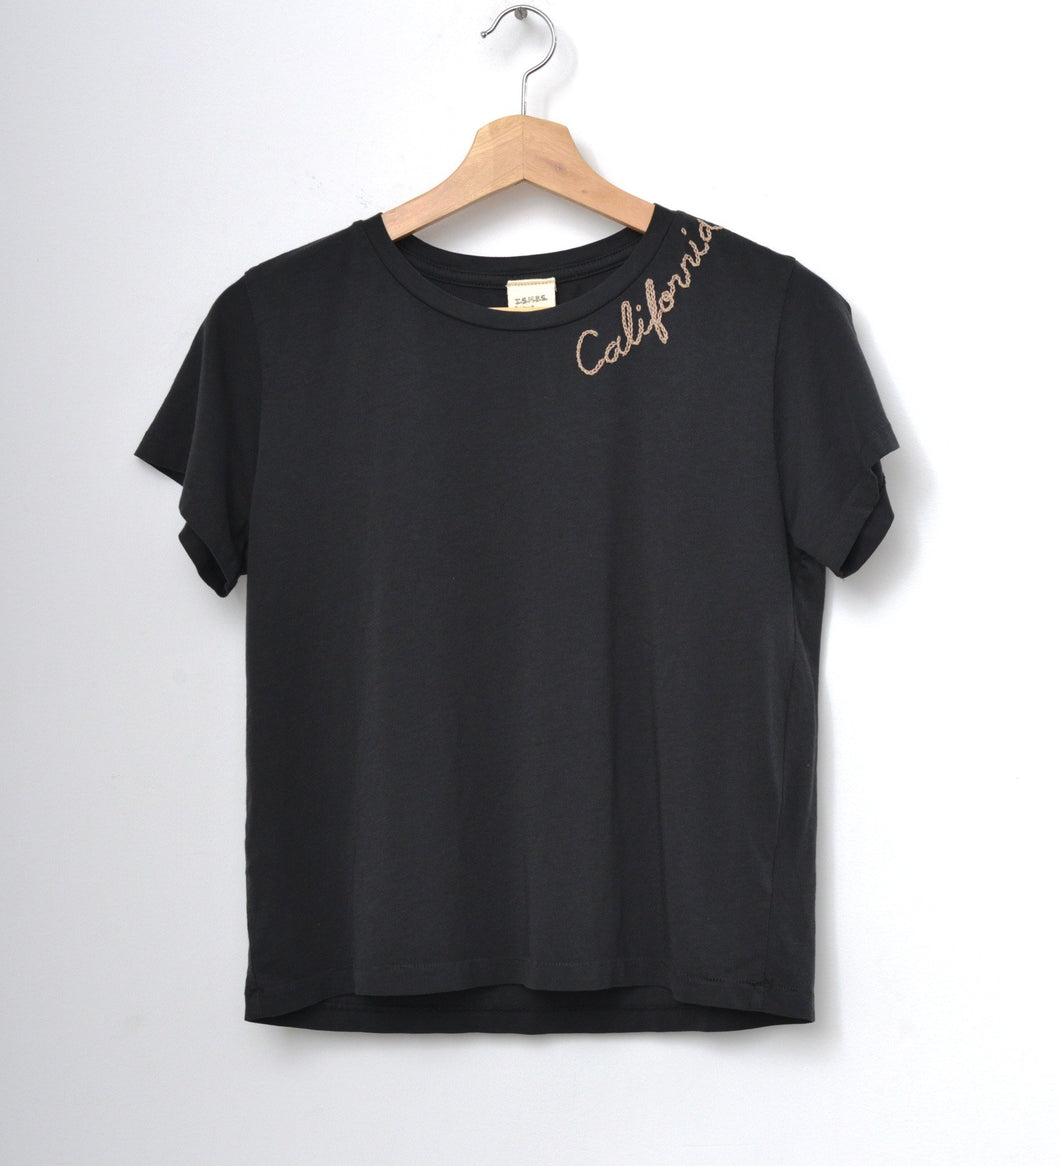 VINTAGE BLACK S/S TEE WITH CUSTOM HAND EMBROIDERY